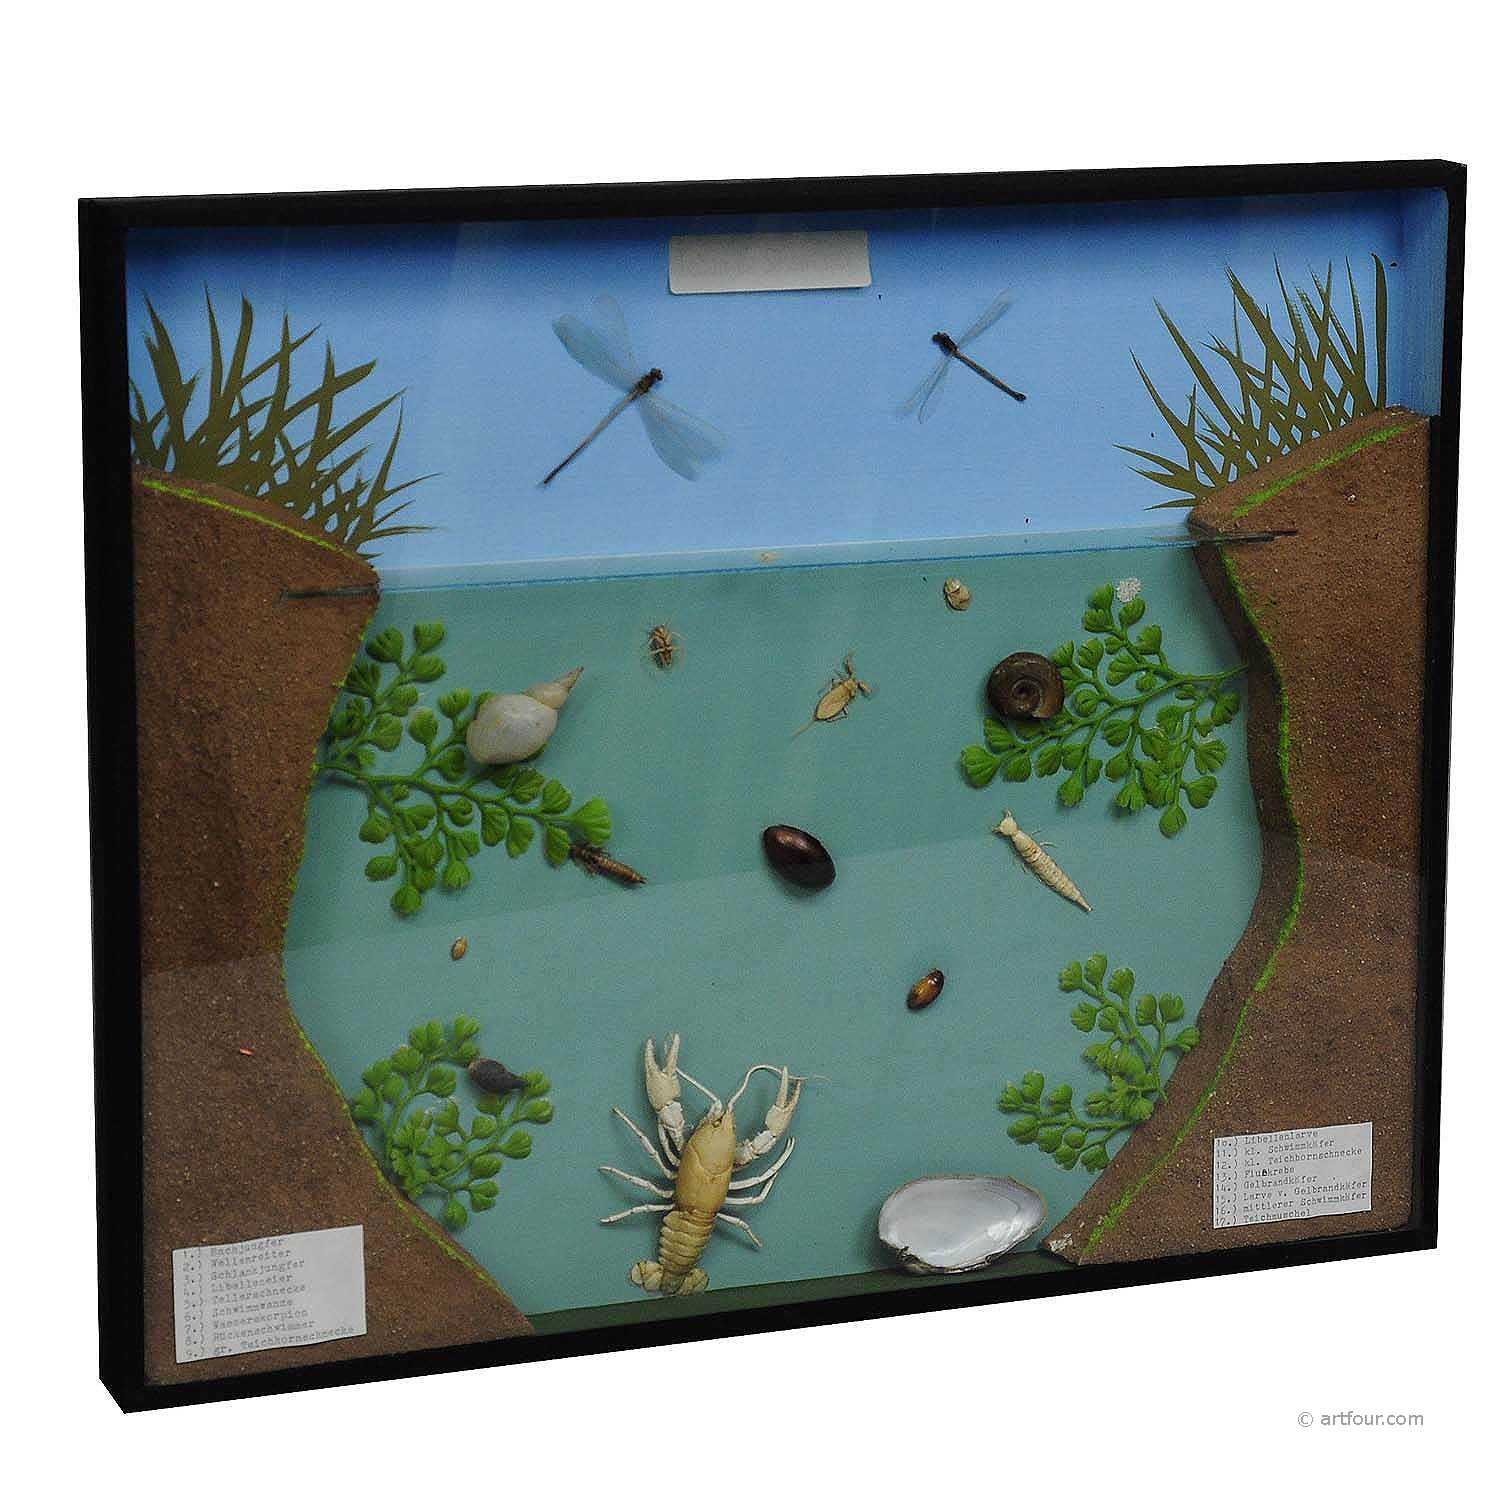 a great vintage school teaching display of the fresh water habitat